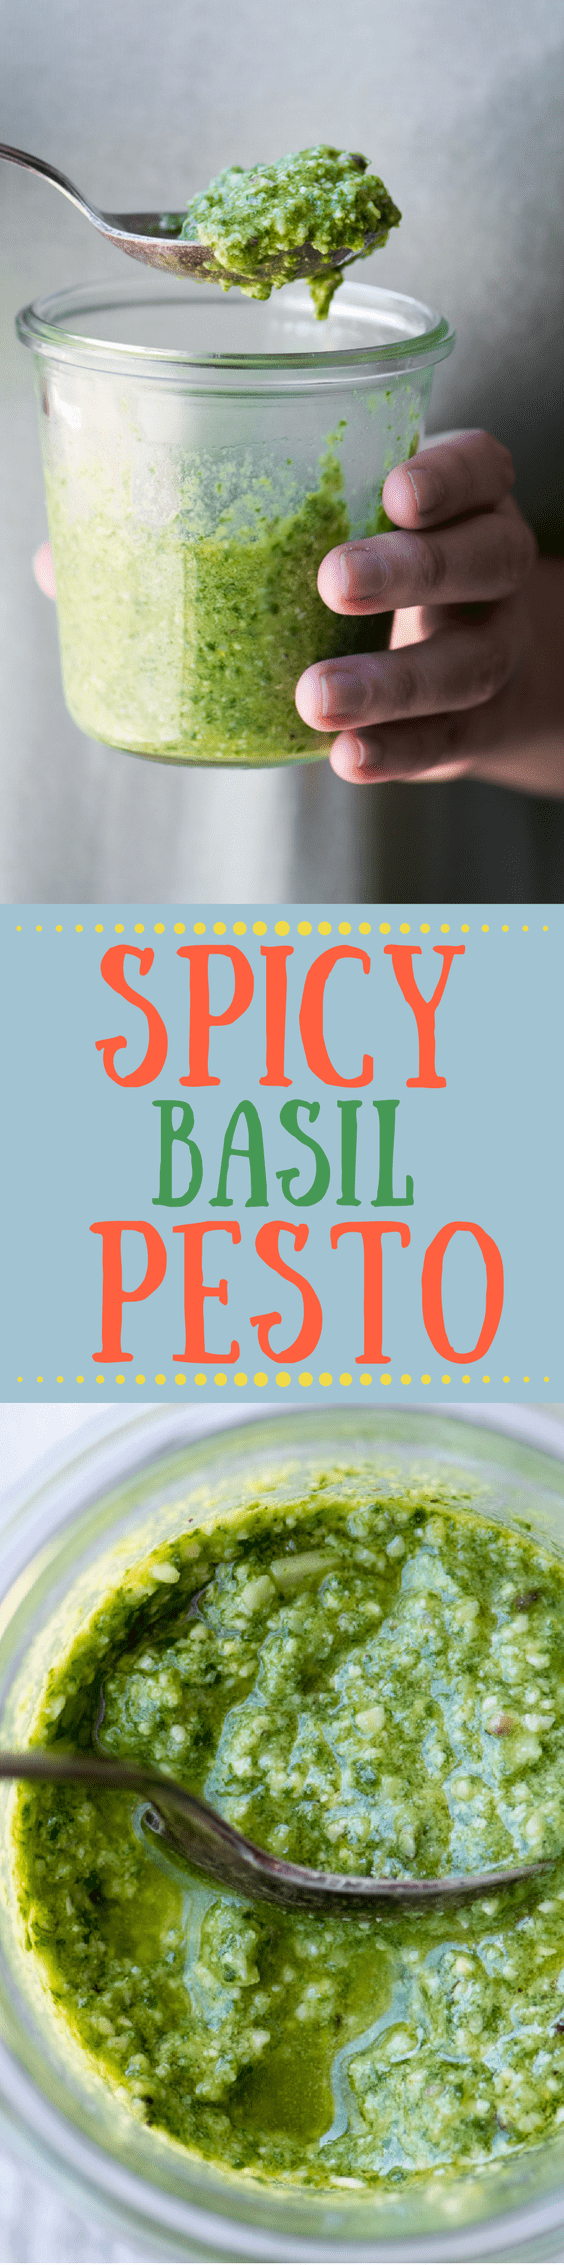 Spicy Basil Pesto ~ Serrano pepper takes the world's freshest sauce from simple to sassy in one fell swoop ~ stir it into freshly boiled pasta, spread it over grilled fish, spoon it on a baked potato, or soak it up with a torn piece of bread, it makes all other sauces obsolete.